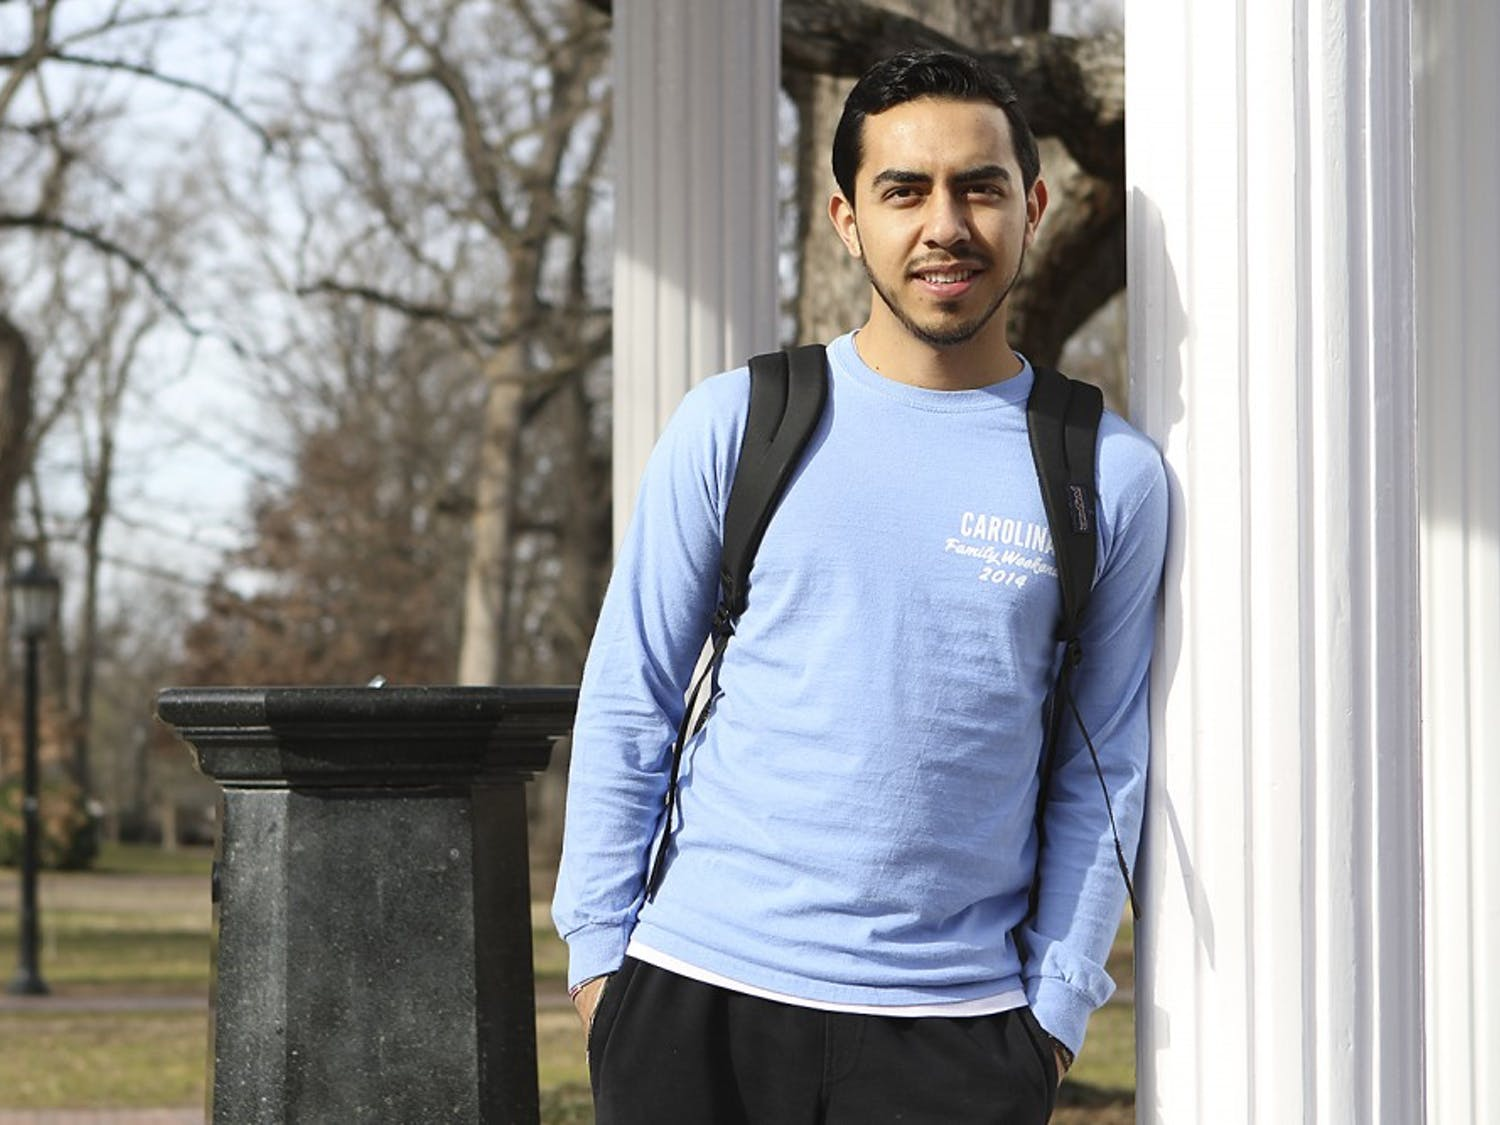 Jose, an undocumented student, has overcome many challenges to attend UNC this year.